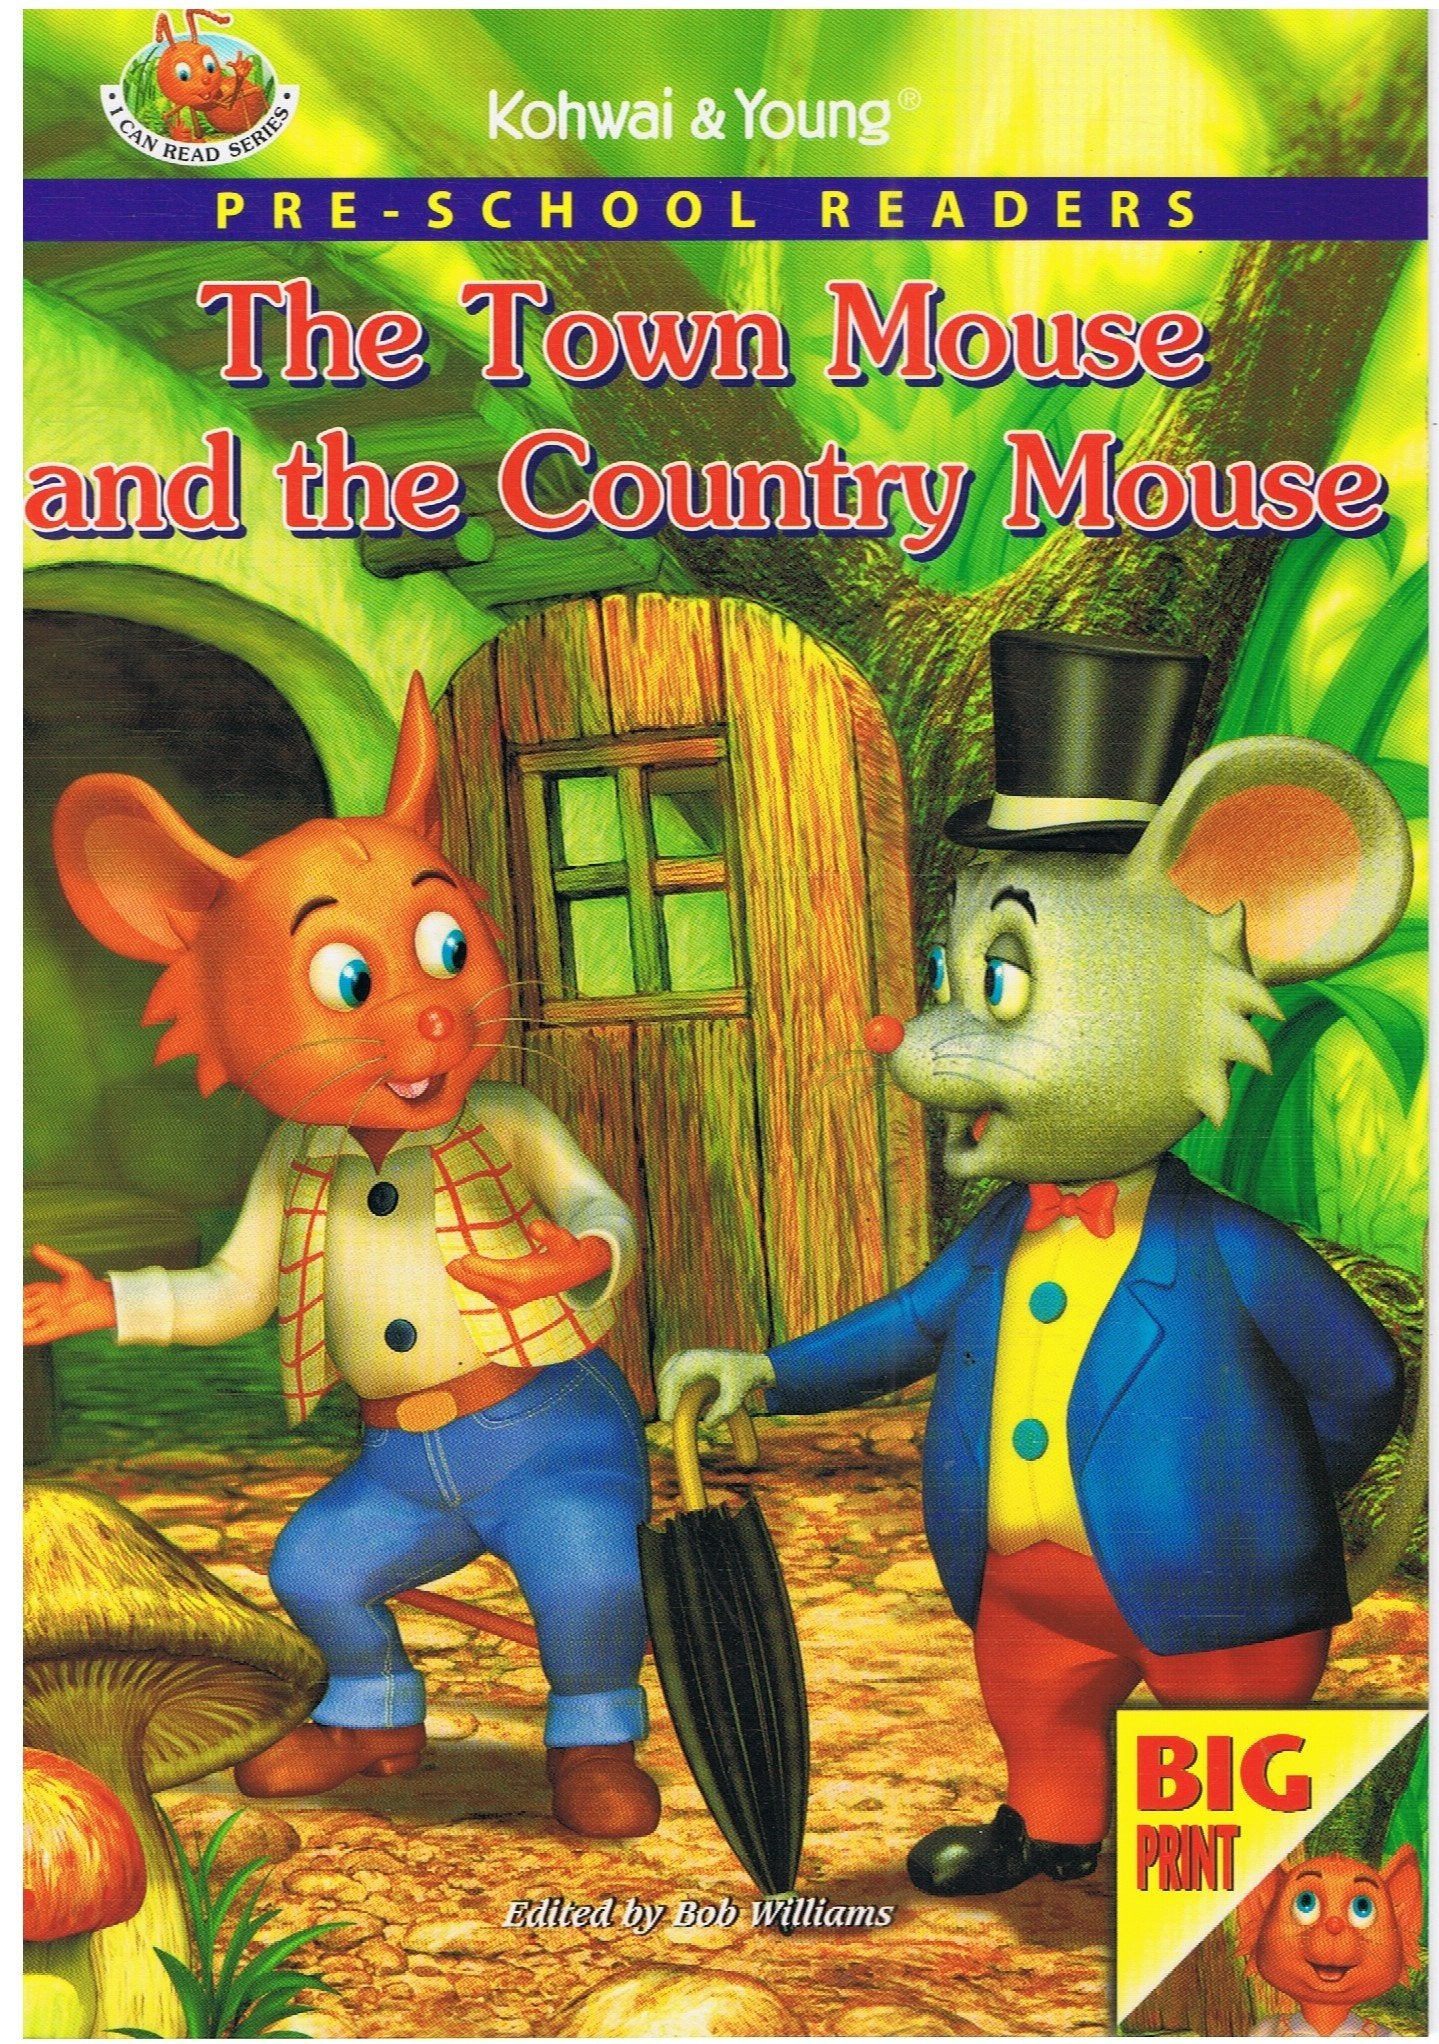 Pre School Readers The Town Mouse And Country Load Image Into Gallery Viewer Kohwai Amp Young